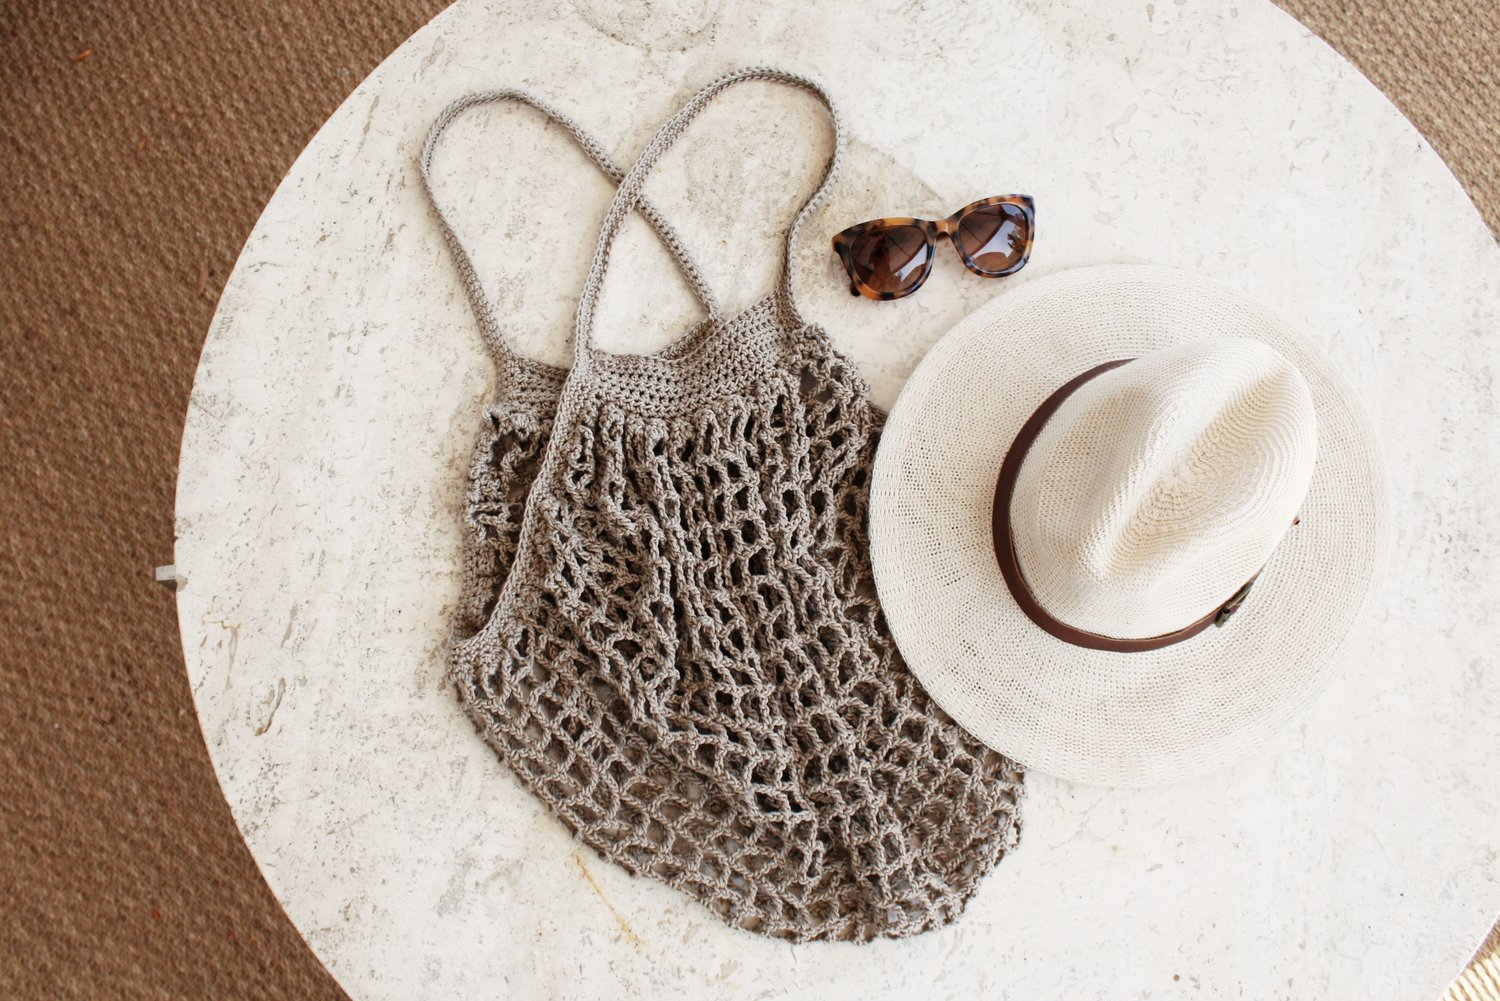 Handcrafted Crochet French Market Bag Chocolate Milk